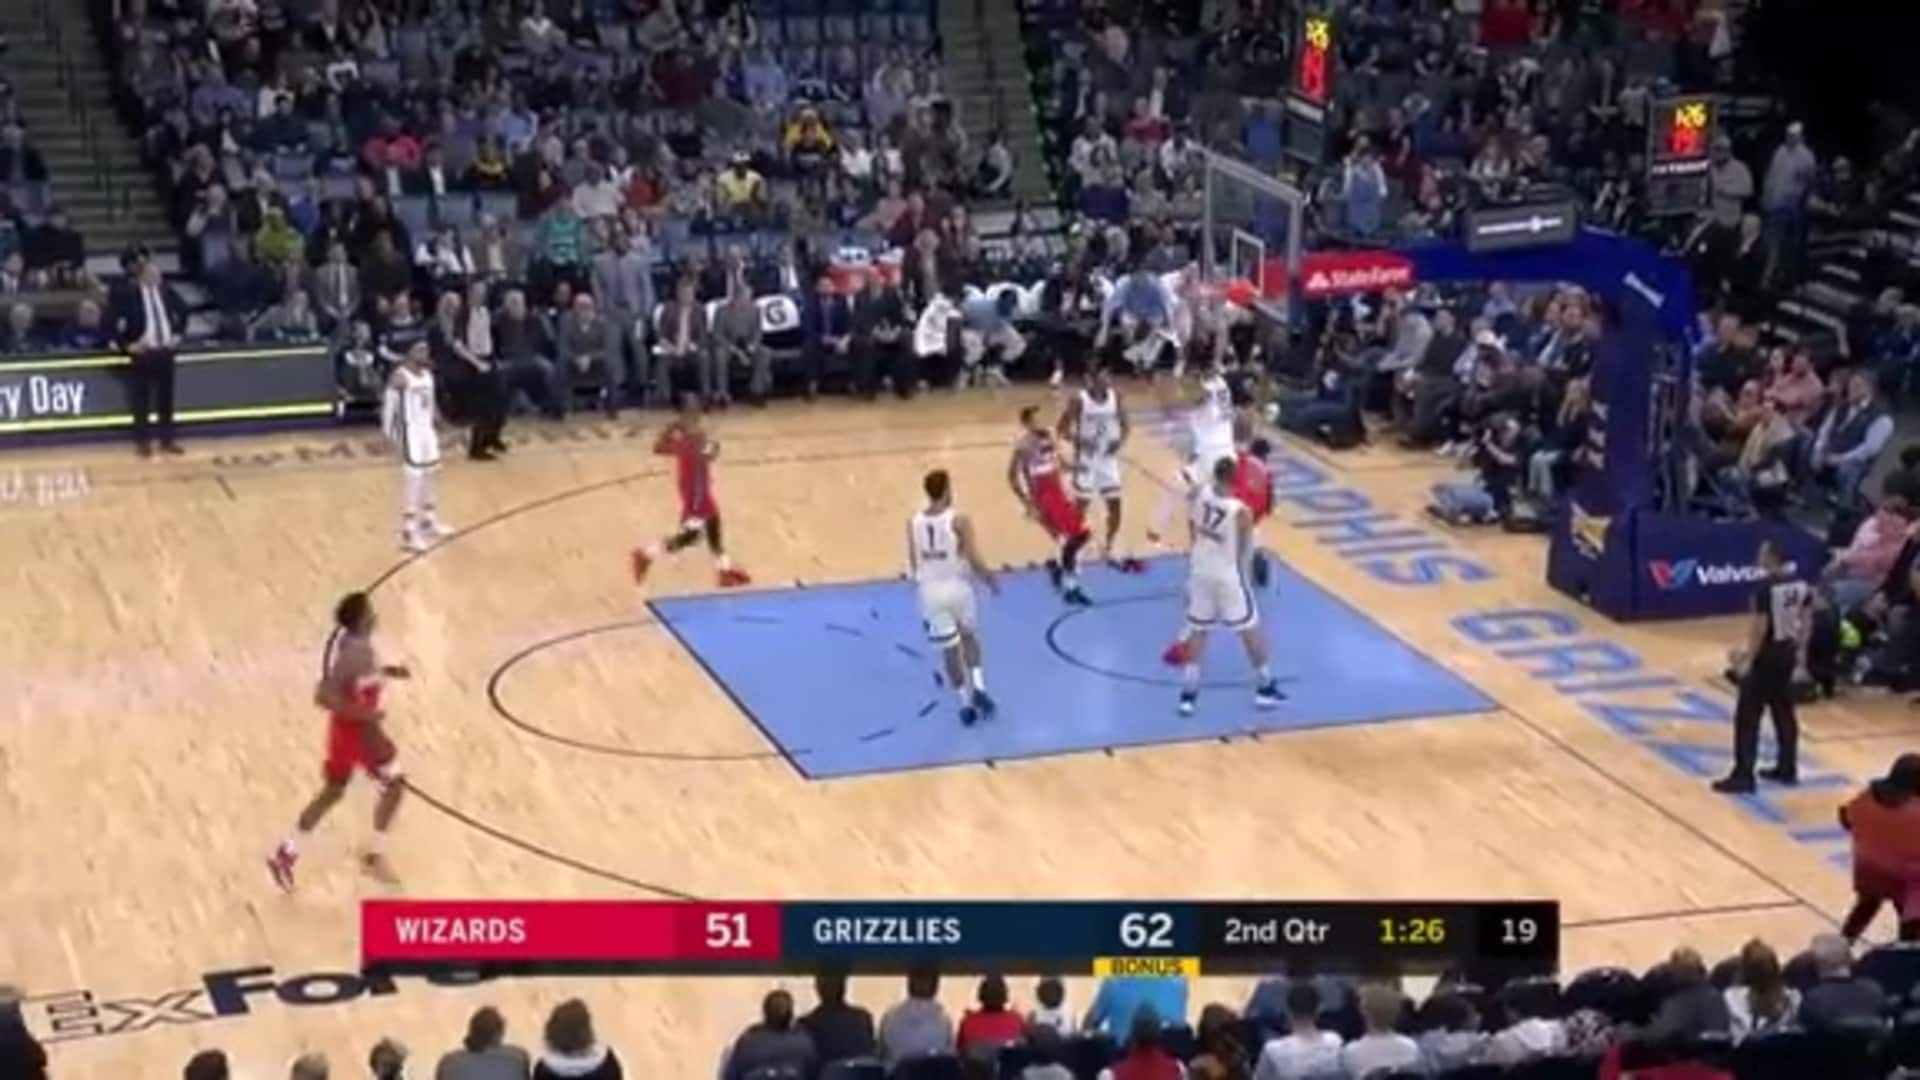 Grizzlies vs. Wizards highlights 12.14.19